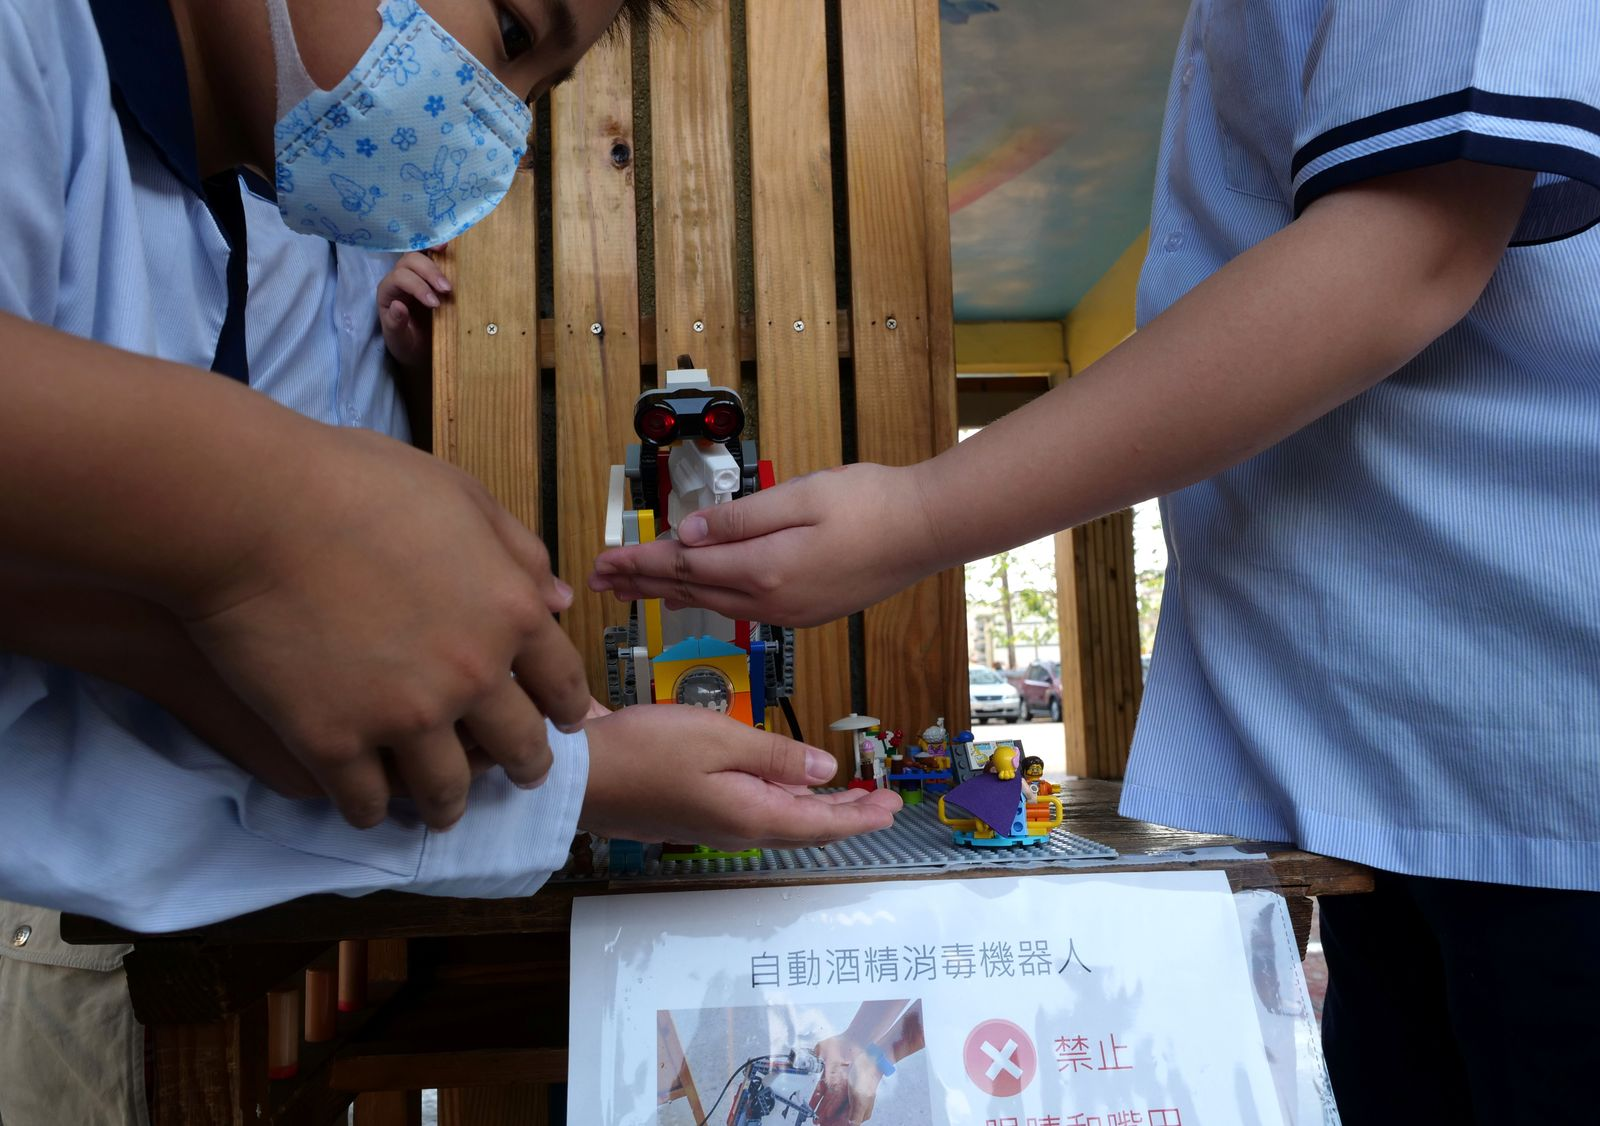 Elementary school students use a self-built motion sensor controlled disinfectant dispenser assembled with Lego parts, following a novel coronavirus outbreak, in the southern Taiwanese city of Kaohsiung, Taiwan